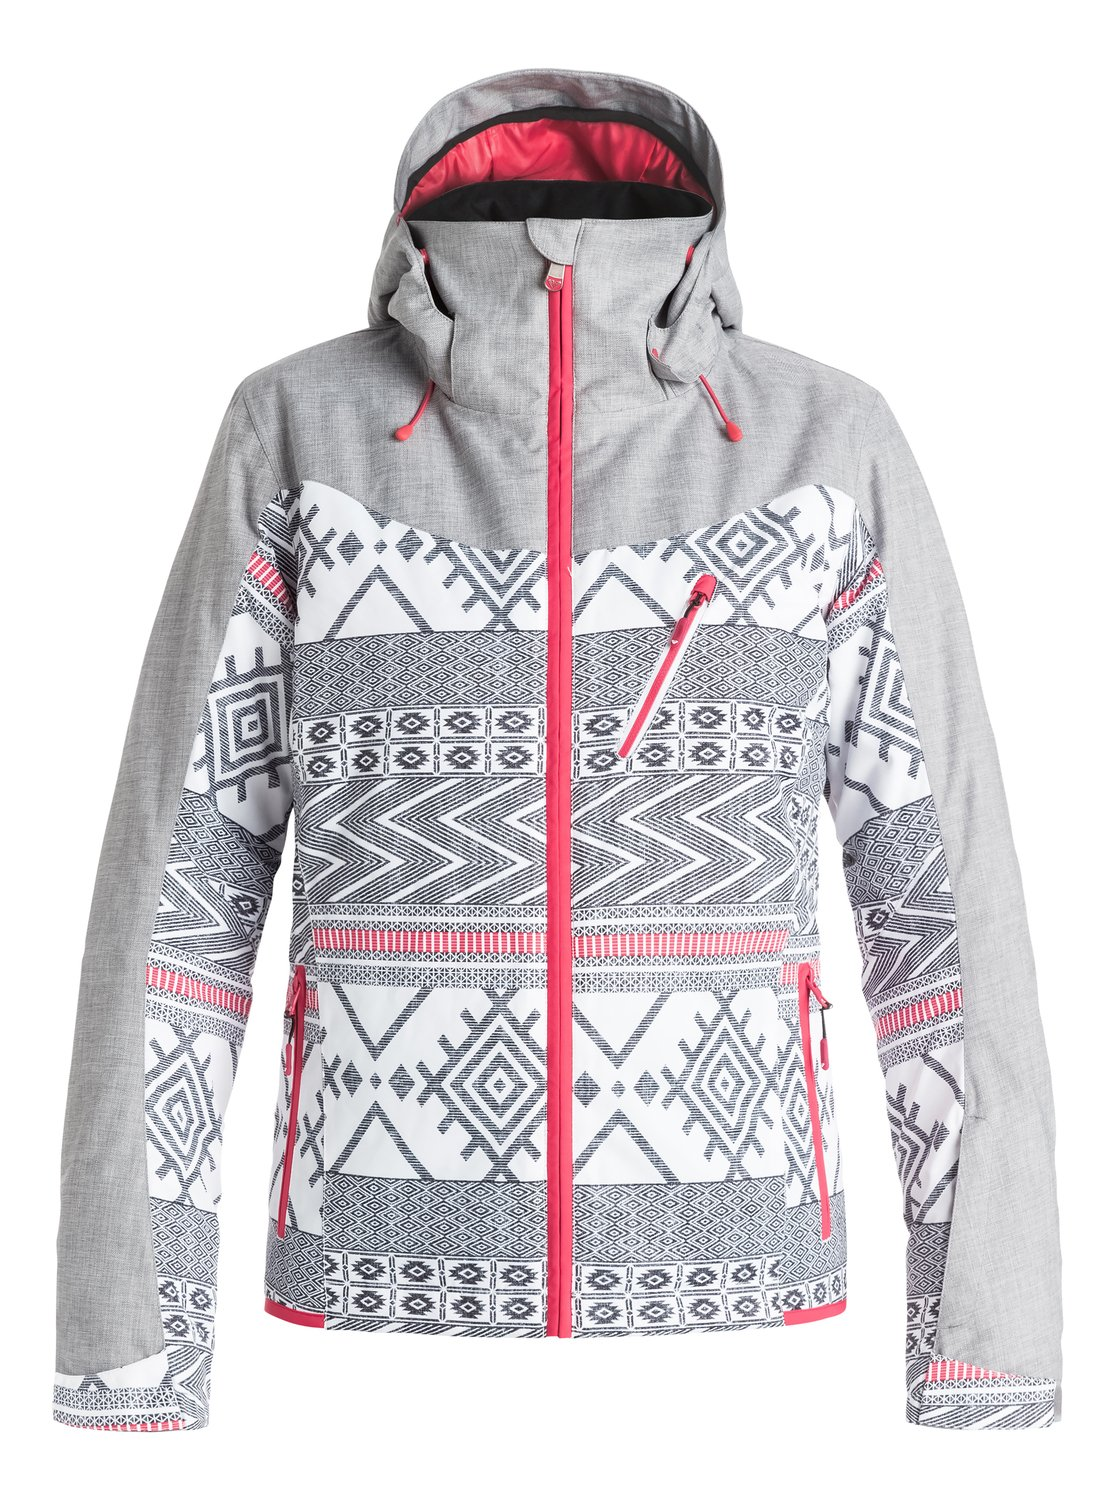 Сноубордическая куртка SassyThe slim-fitting Sassy snow jacket for women features sporty panelling, sleek style lines and top mountain tech. It has been crafted with 10K ROXY DryFlight® technology waterproofing for reliable waterproof and breathable protection in a wide range of winter conditions, Warmflight® level 2 insulation and breathable taffeta lining with soft tricot panels for low-bulk warmth and critically-taped seams for extra protection in the most exposed areas.<br>